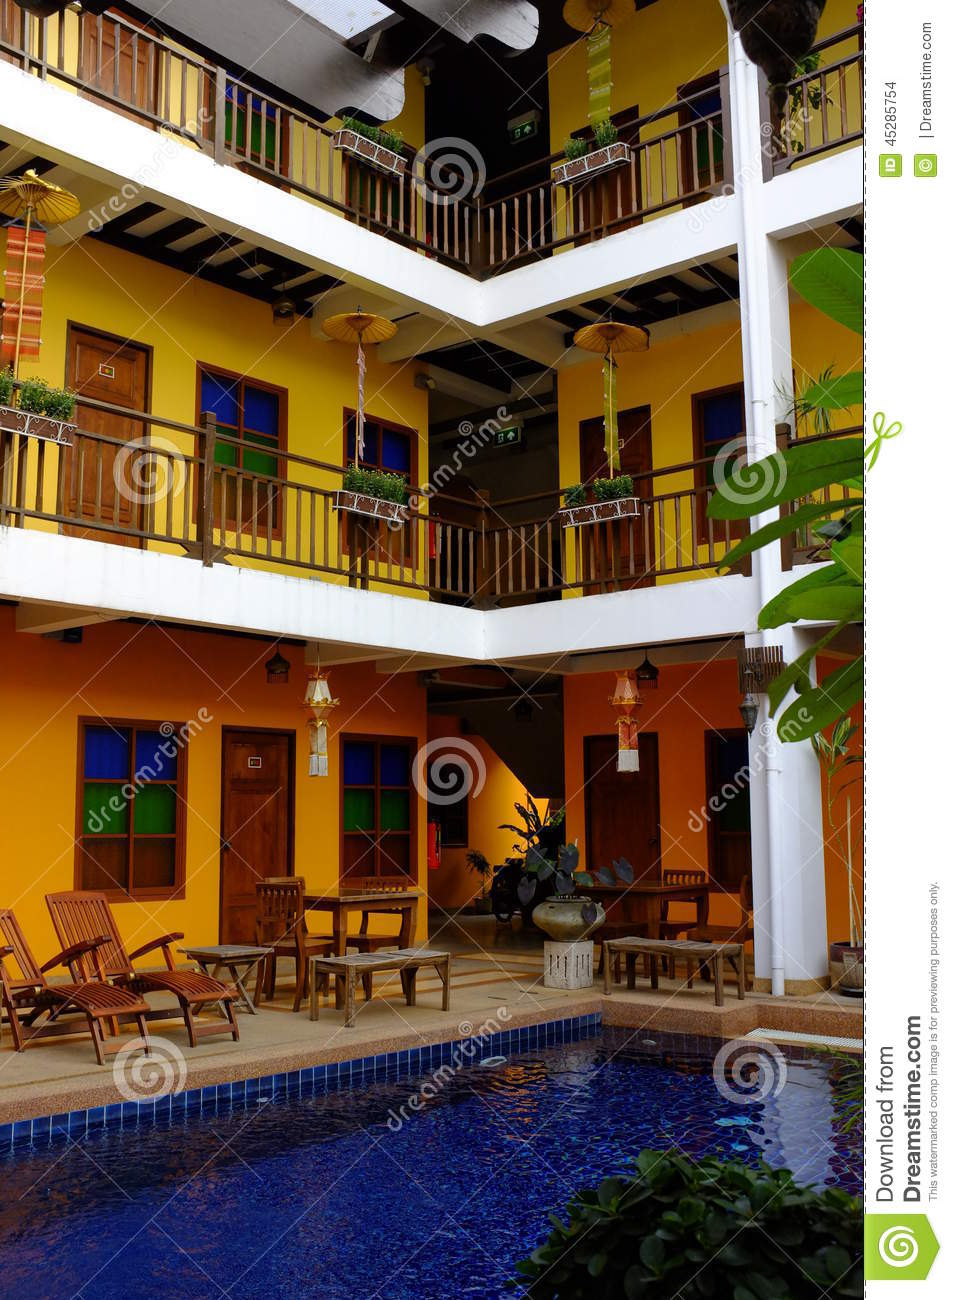 Hotel courtyard with swimming pool editorial stock image for Lovely hotel